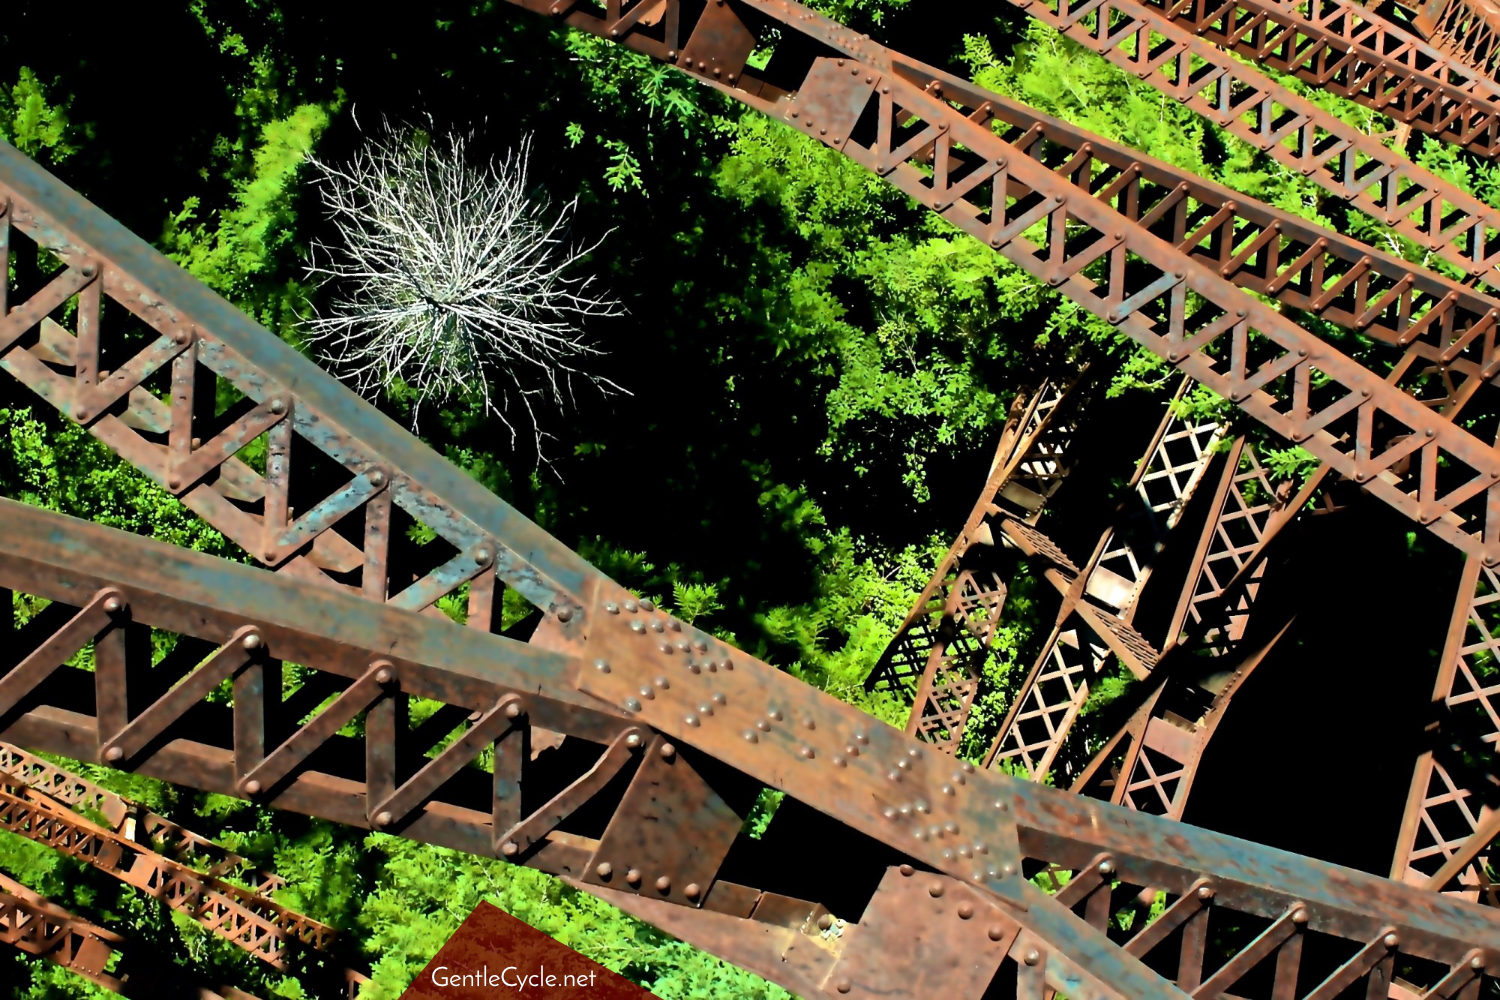 View-from-the-Trestle-1500x1000